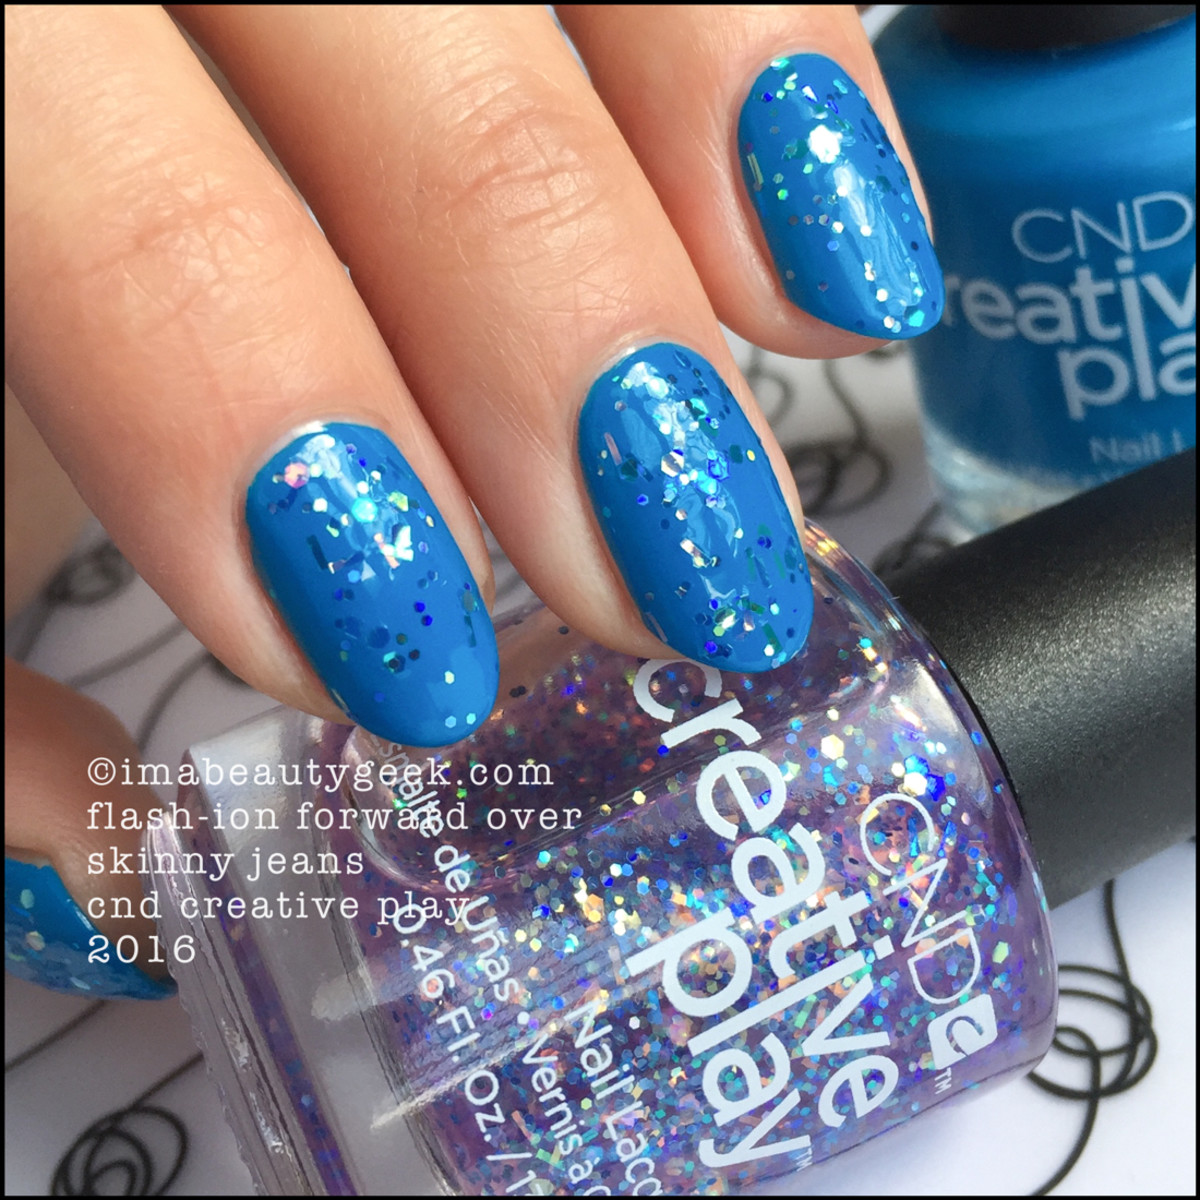 CND Creative Play Flashion Forward over Skinny Jeans_CND Creative Play Nail Polish Swatches